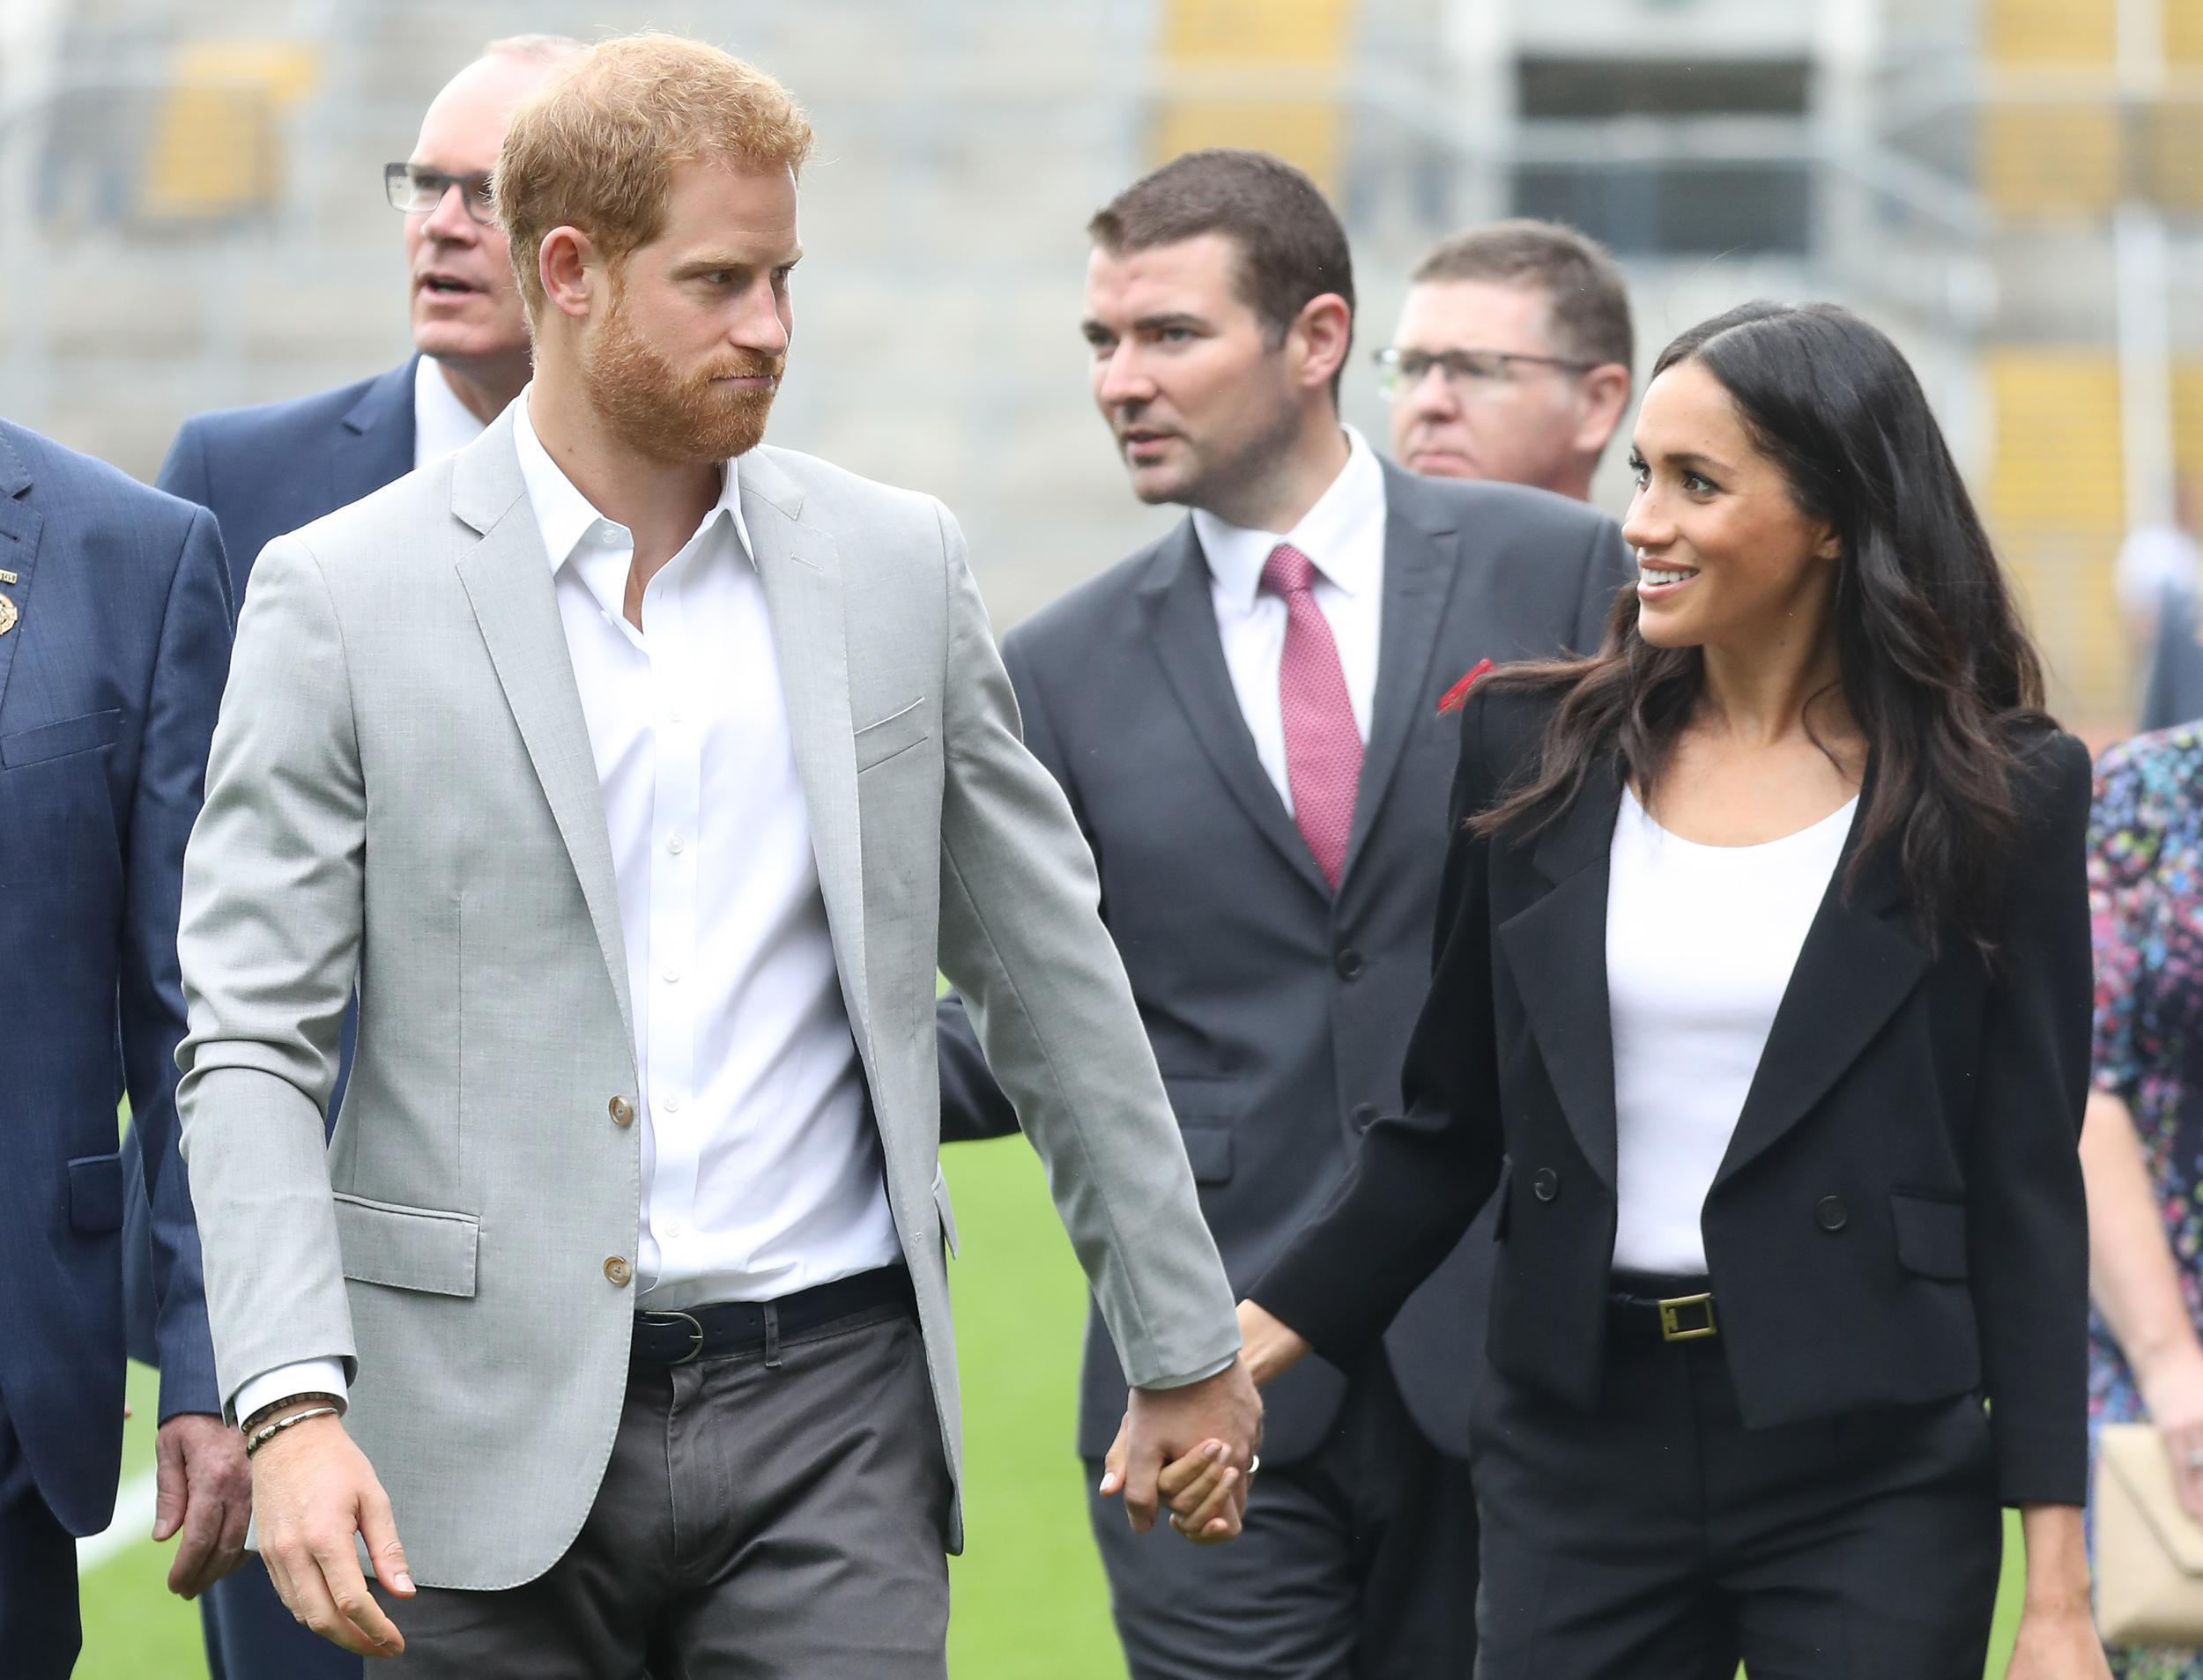 royal baby why meghan markle and prince harry may not always have custody of child the independent why meghan markle and prince harry may